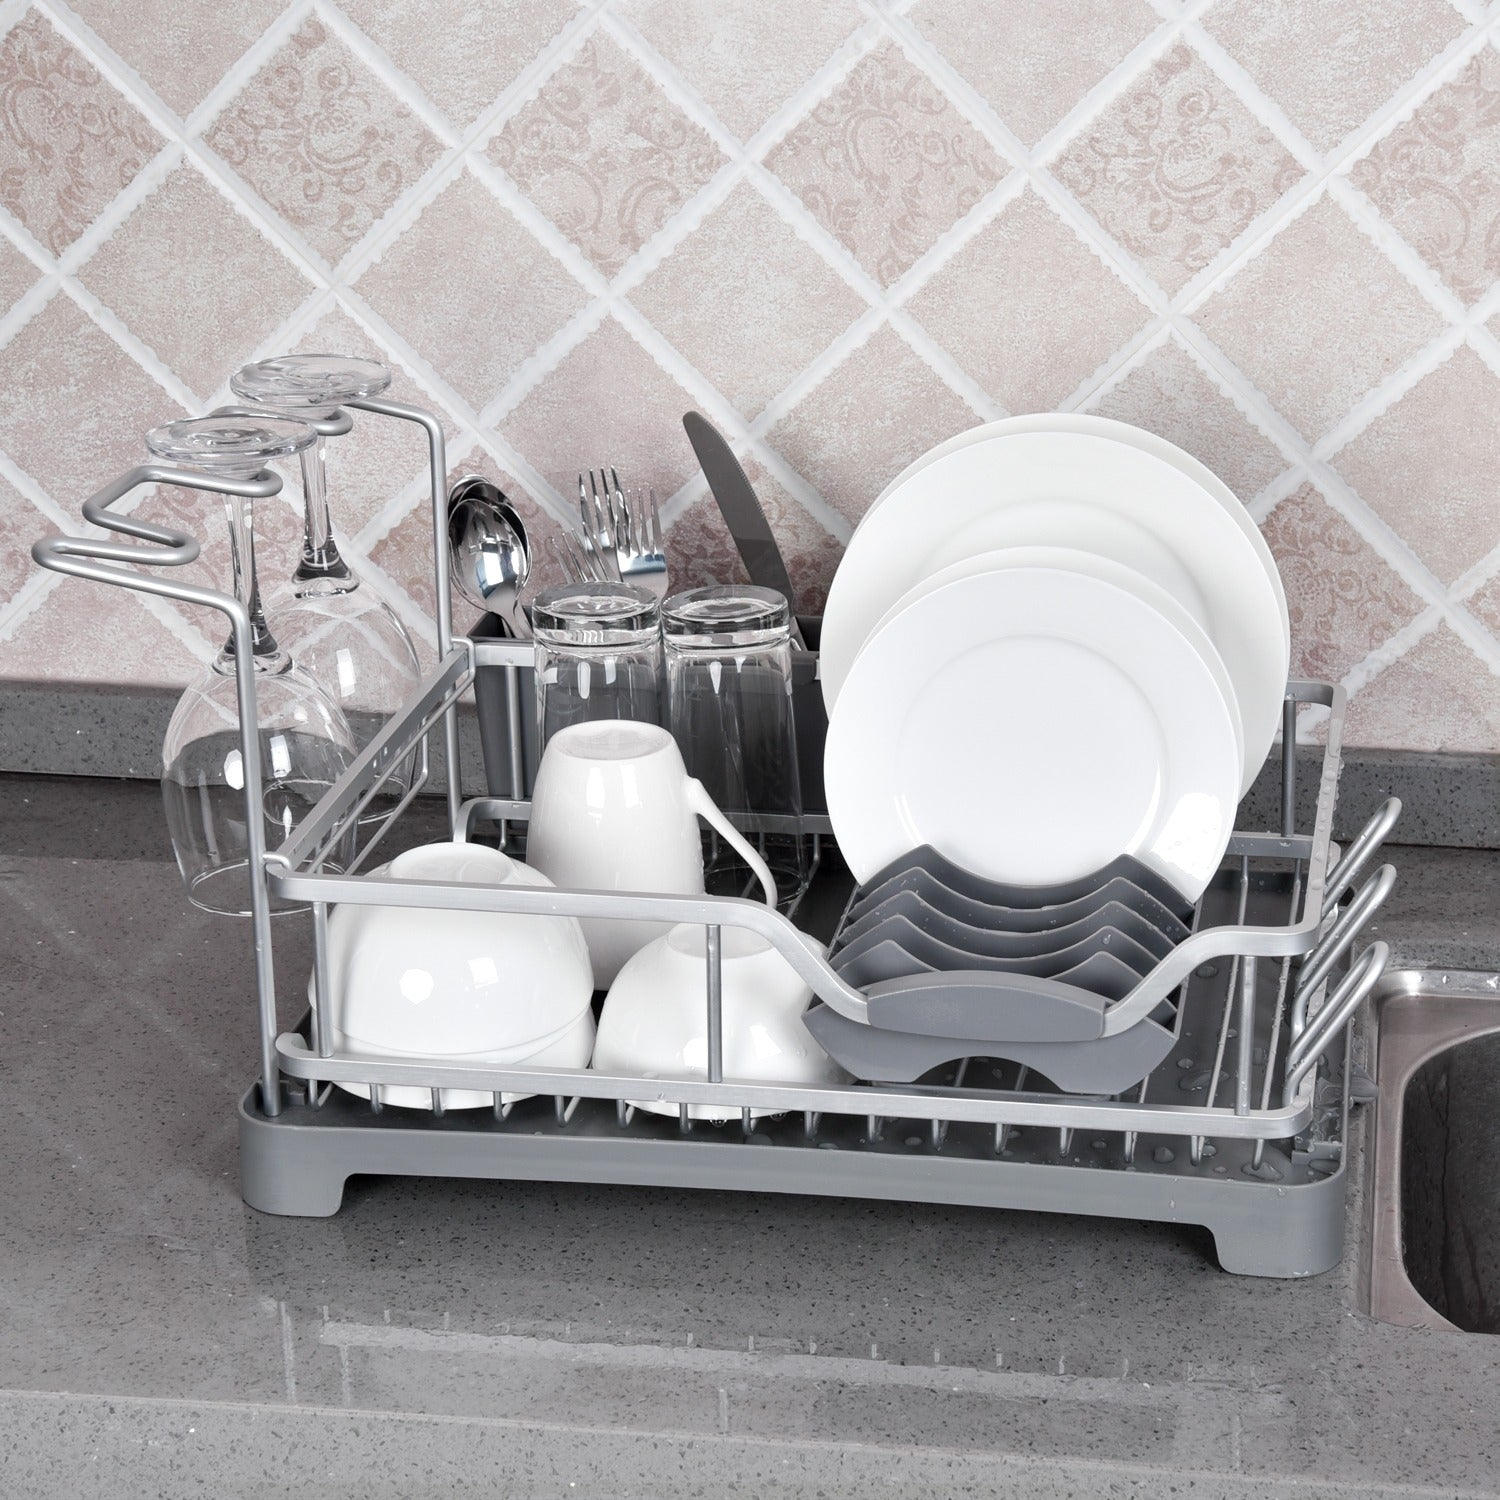 YOURLITE Dish Drying Rack for Kitchen Counter with Large Capacity